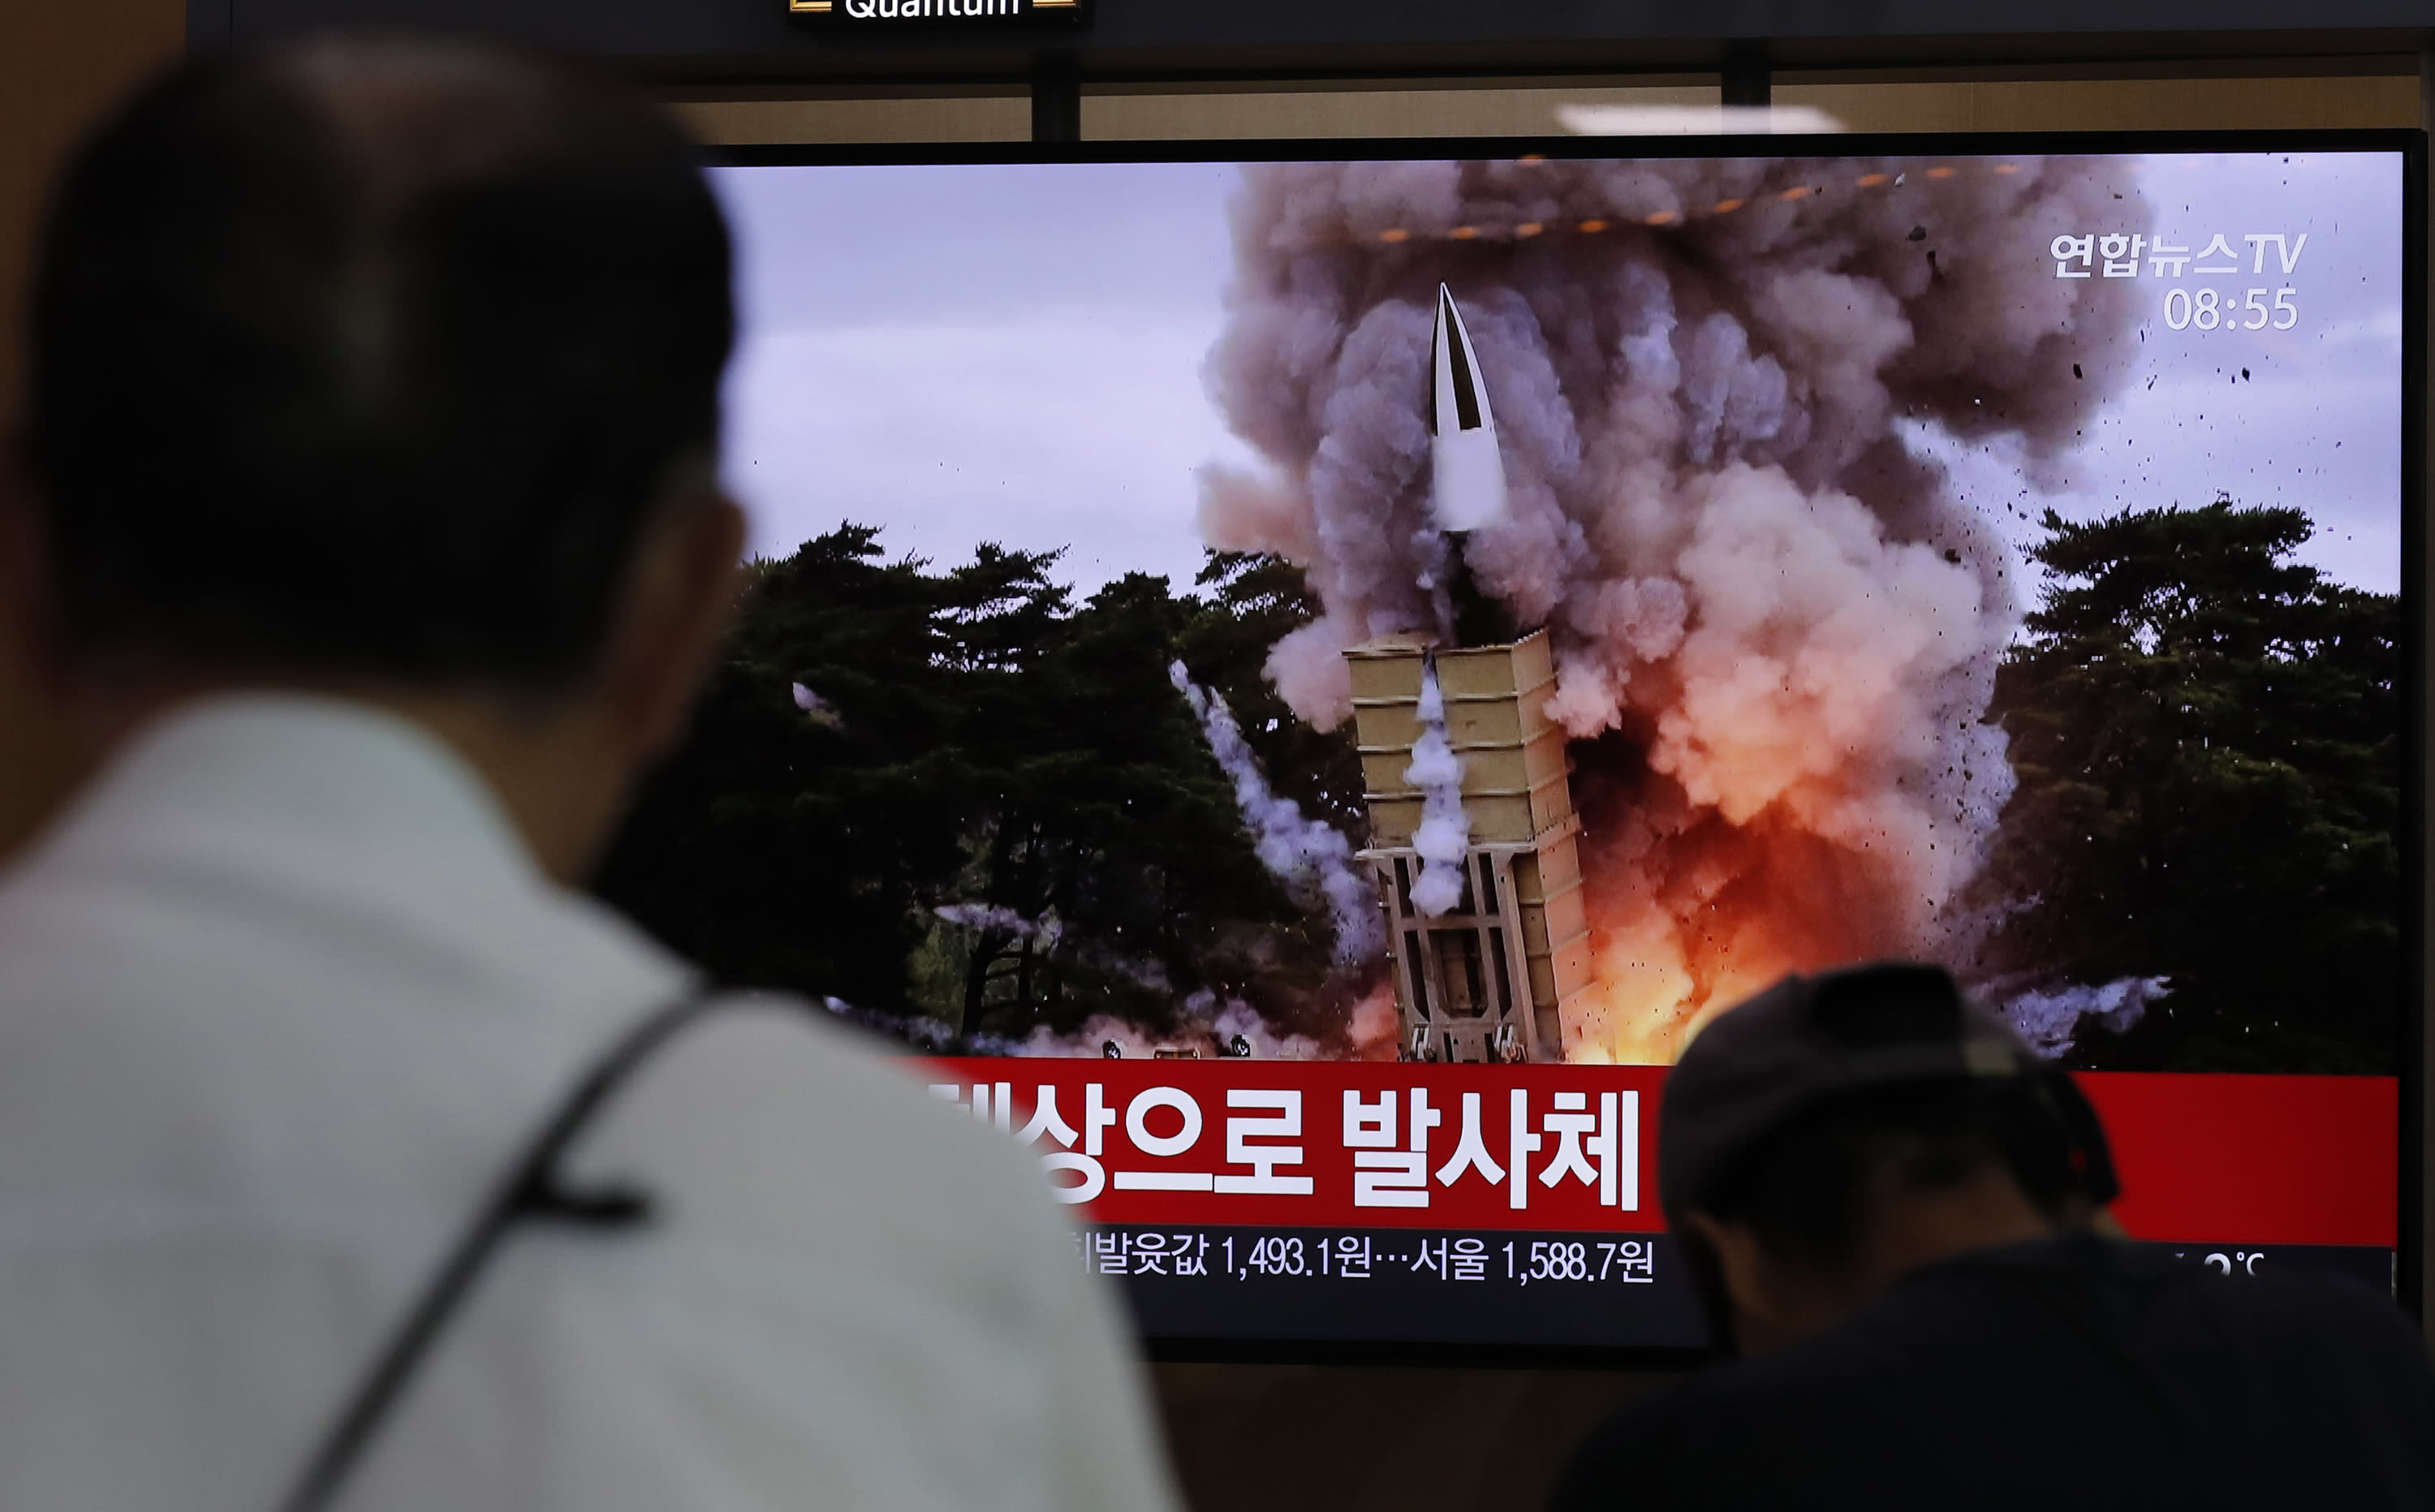 """People watch a TV news program reporting North Korea's firing projectiles with a file image at the Seoul Railway Station in Seoul, South Korea, Saturday, Aug. 24, 2019. North Korea fired two suspected short-range ballistic missiles off its east coast on Saturday in the seventh consecutive week of weapons tests, South Korea's military said, a day after it threatened to remain America's biggest threat in protest of U.S.-led sanctions on the country. The part of Korean letters read: """"Projectiles."""" (AP Photo/Lee Jin-man)"""